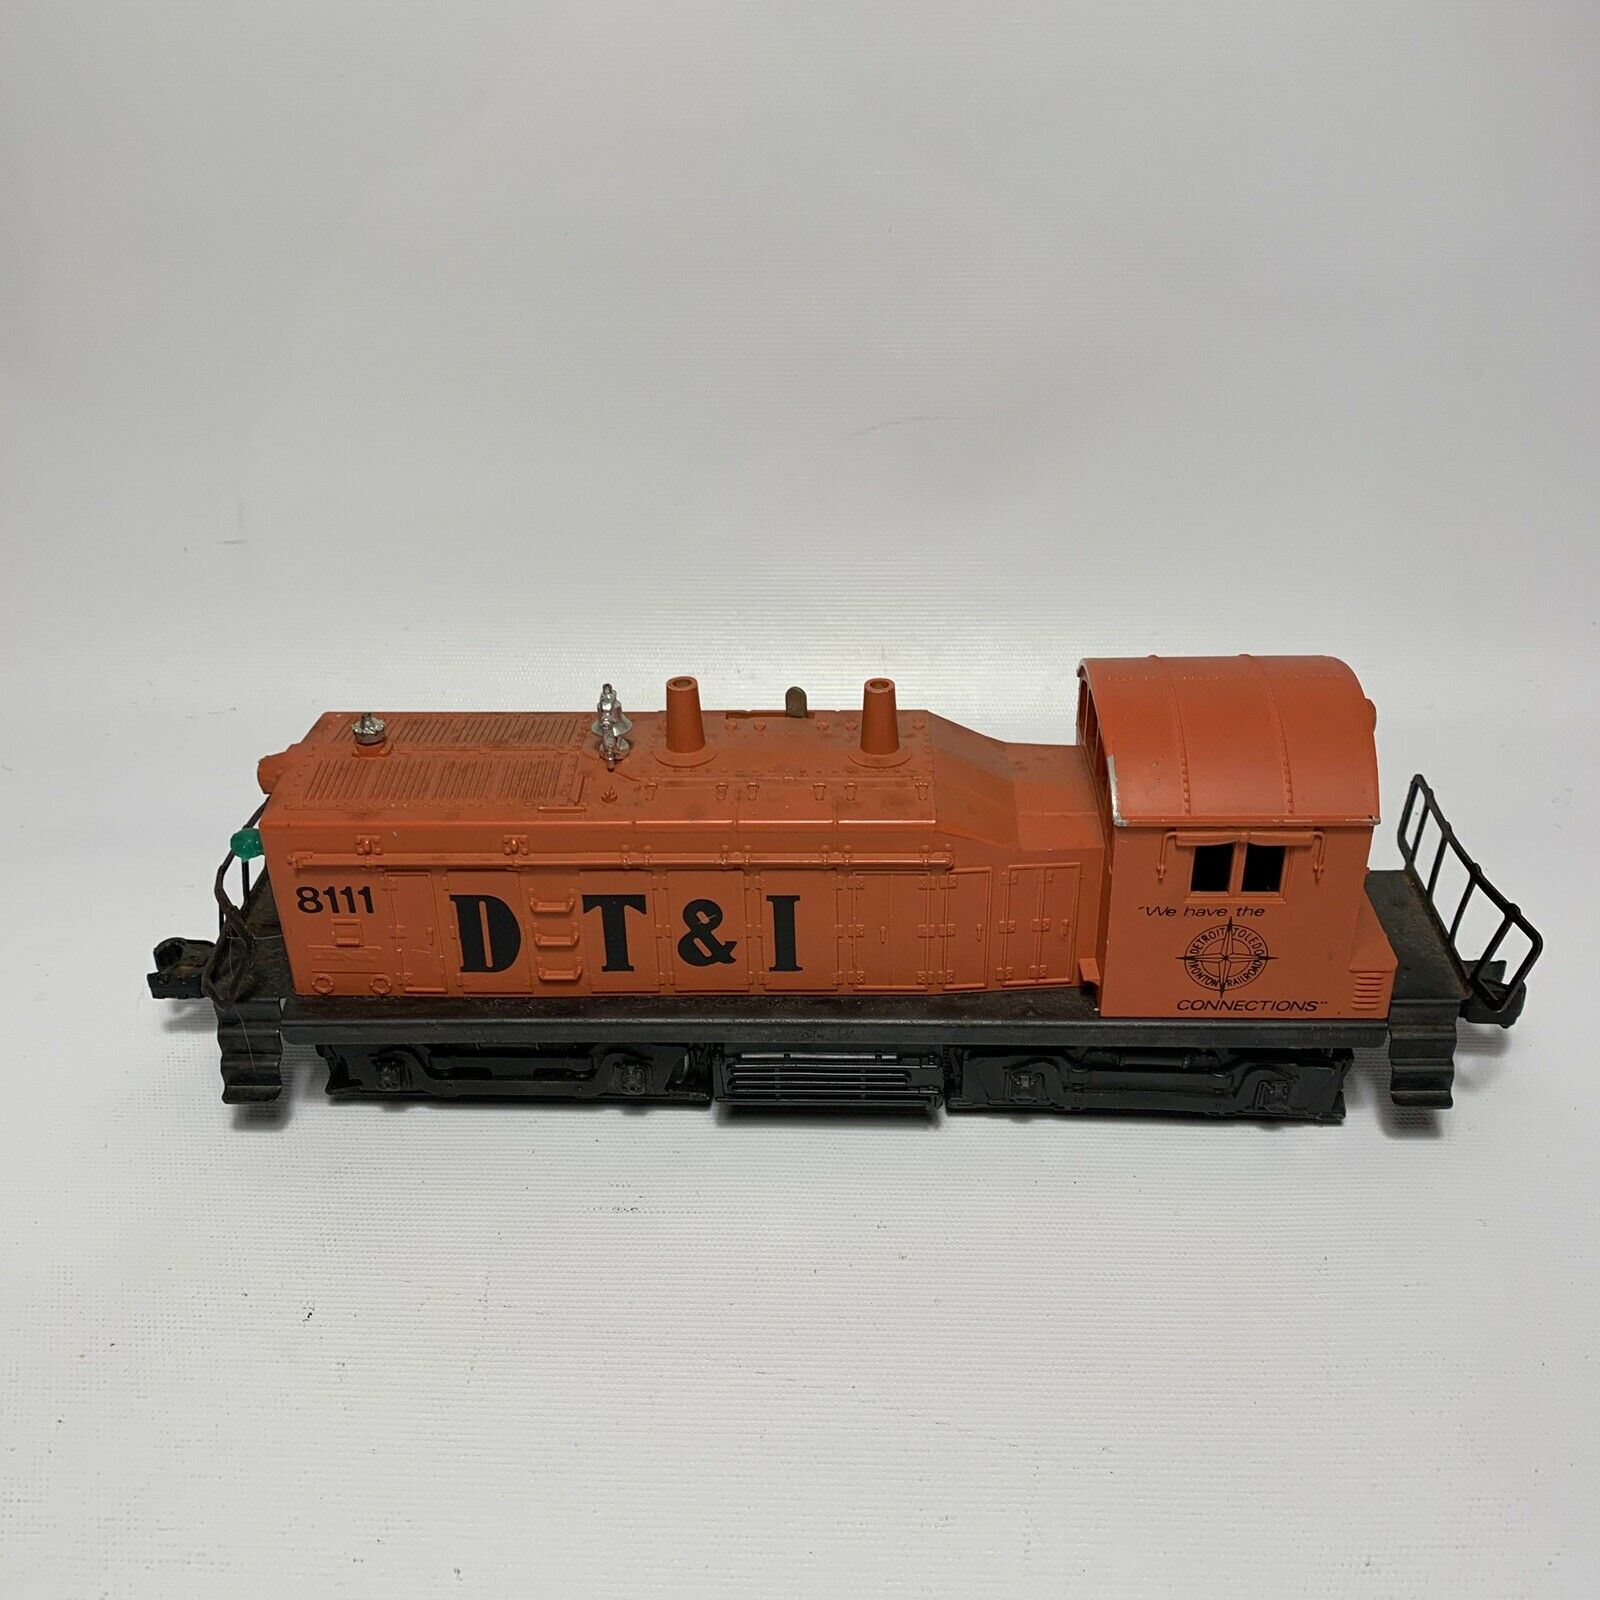 Lionel Lionel Lionel  8111 DT&I Switcher Engine 1971 9f89a8